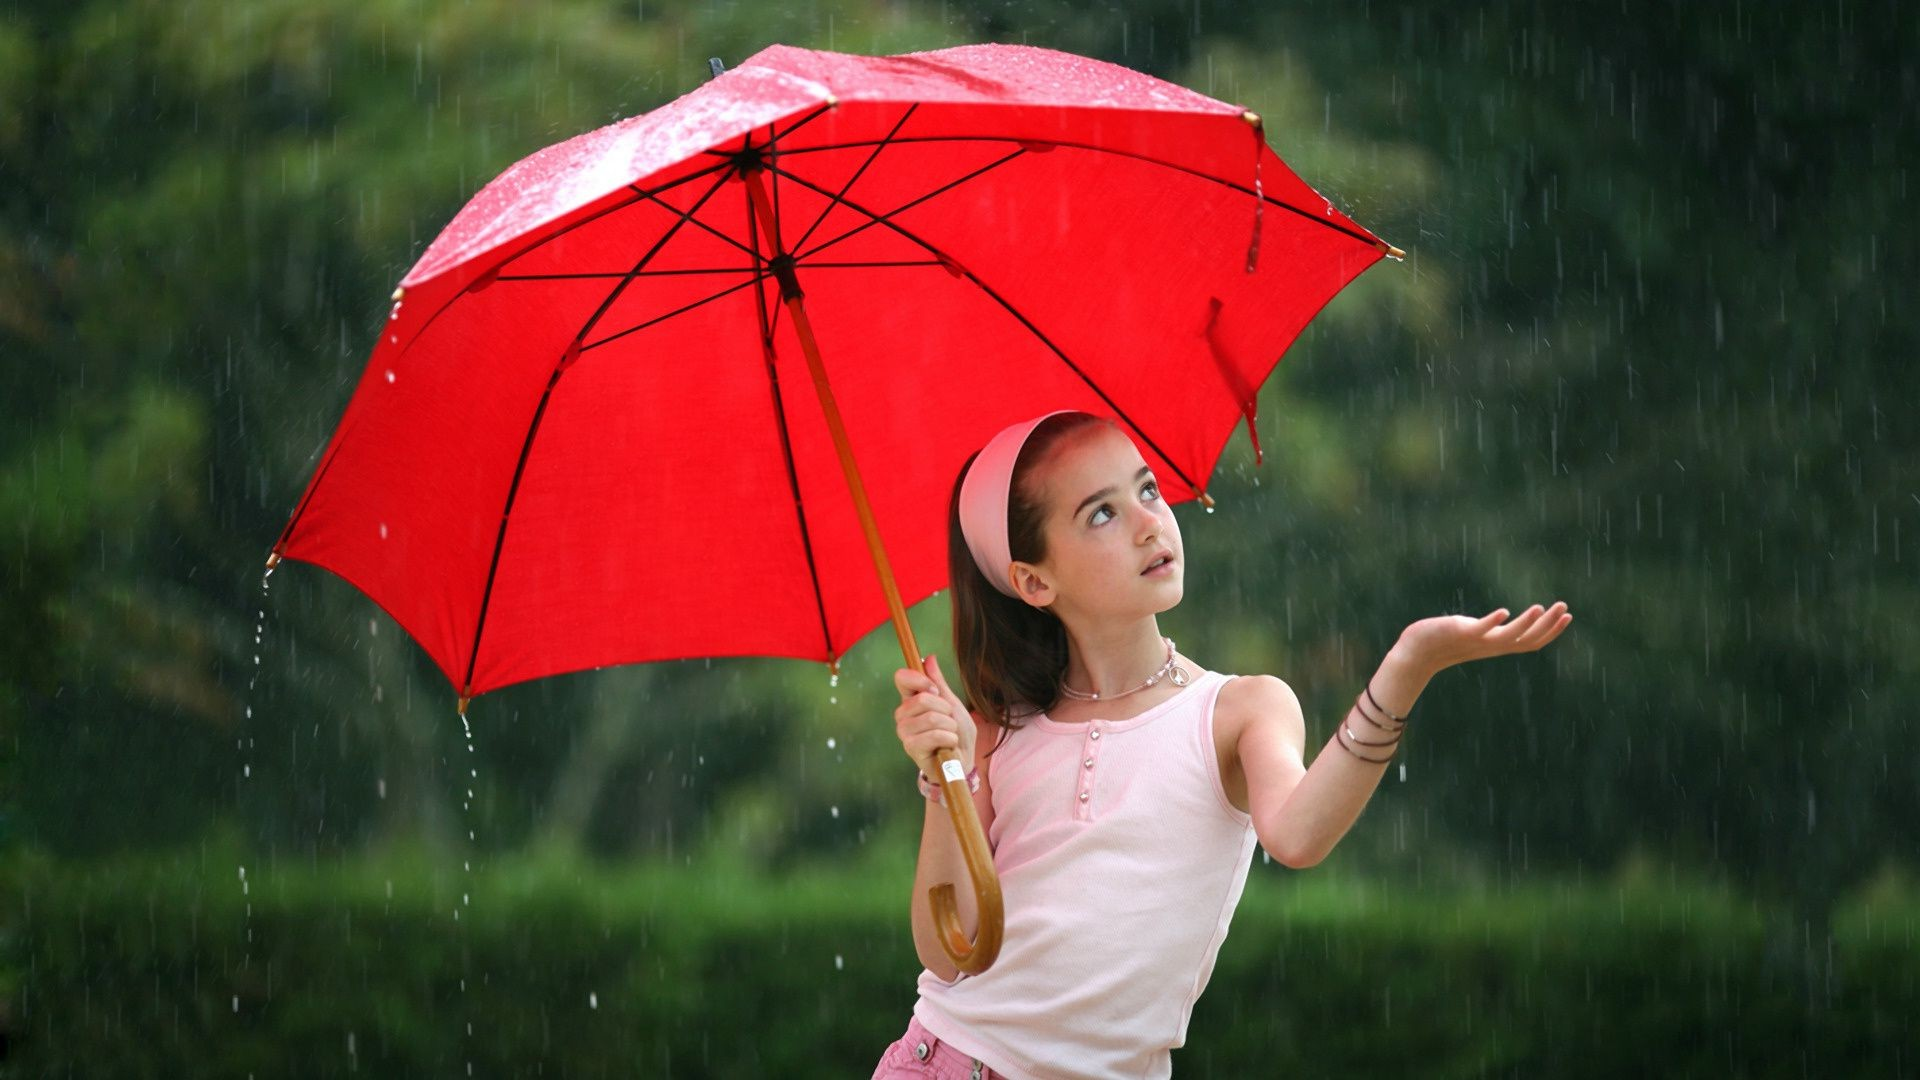 Girl Umbrella Red Rain Android Wallpapers For Free